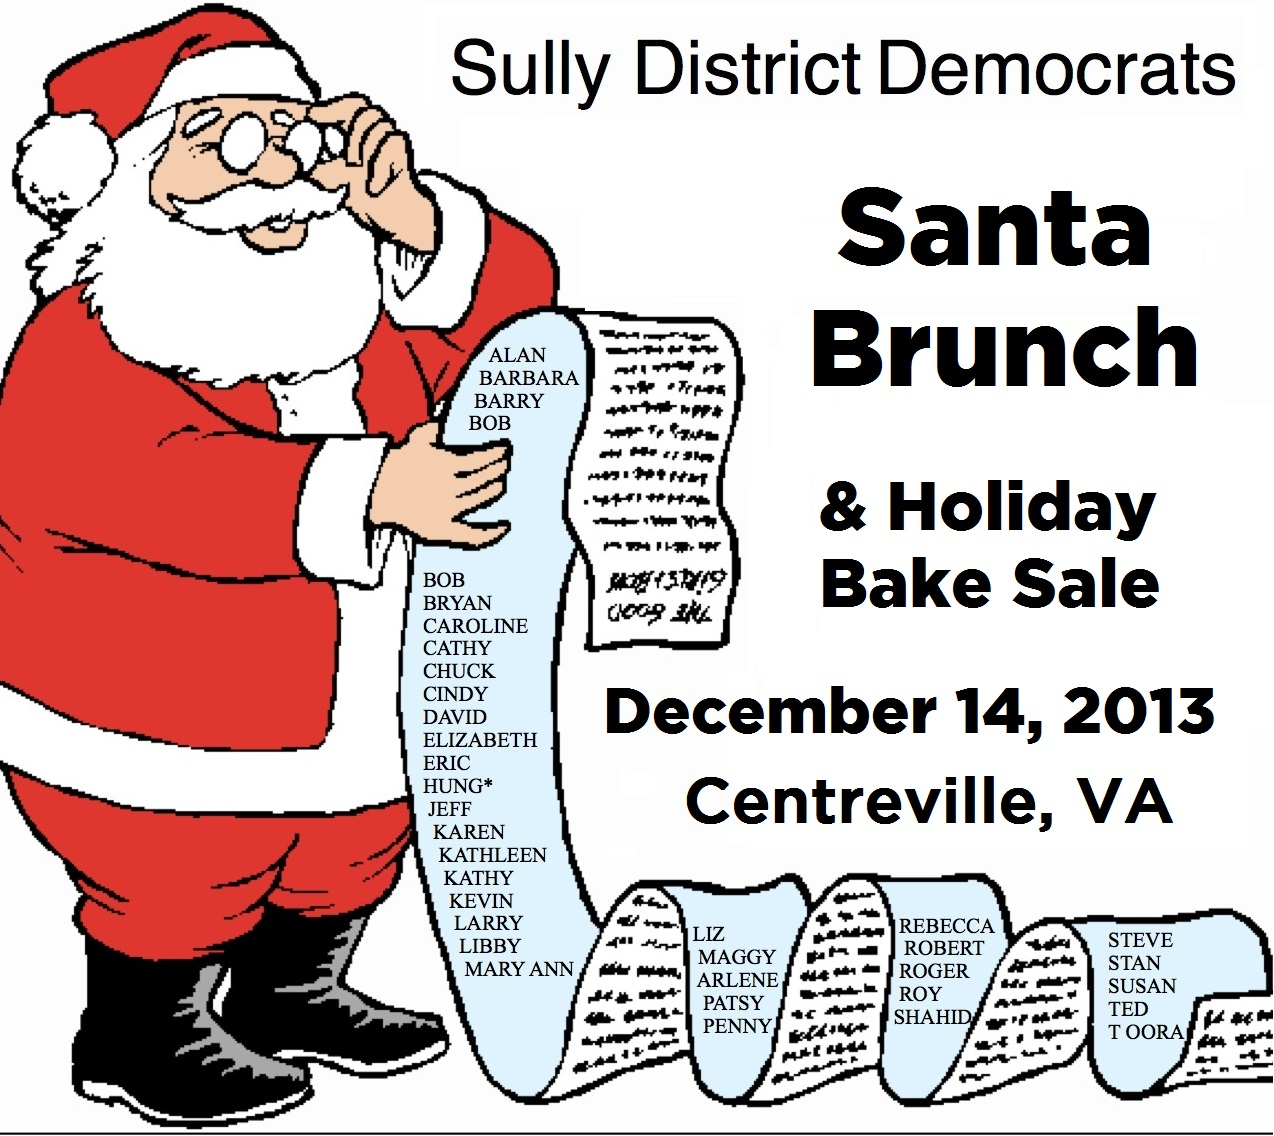 13_Santa_Brunch website image